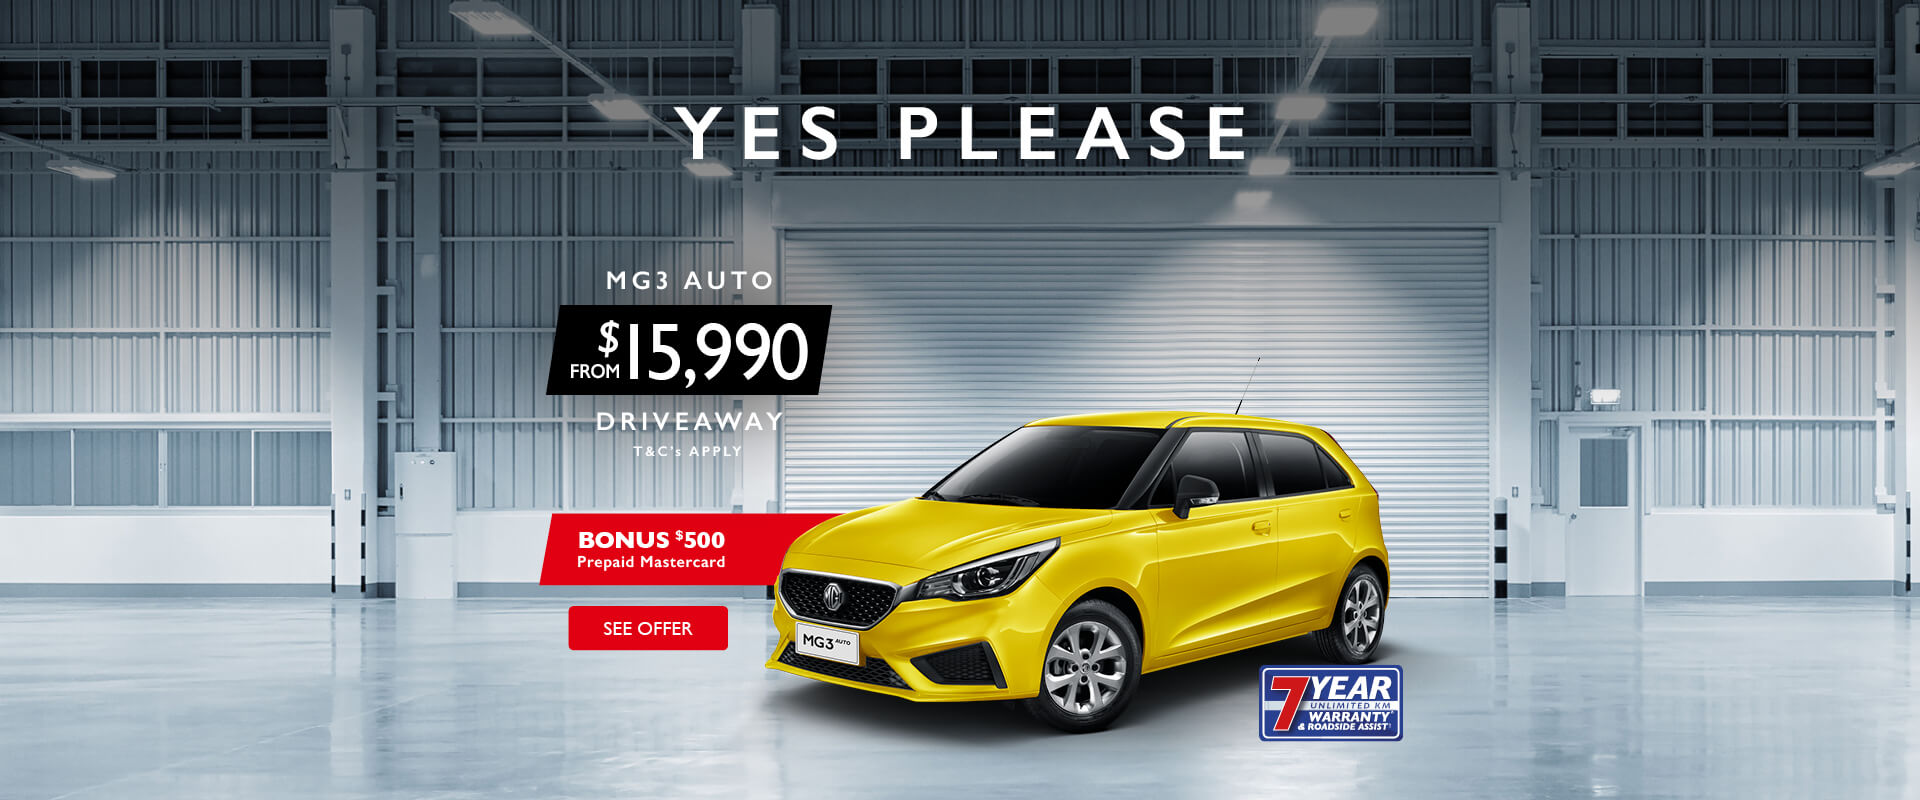 MG3 Auto from $15,990 Driveaway. Bonus $500 Prepaid Mastercard Offer.